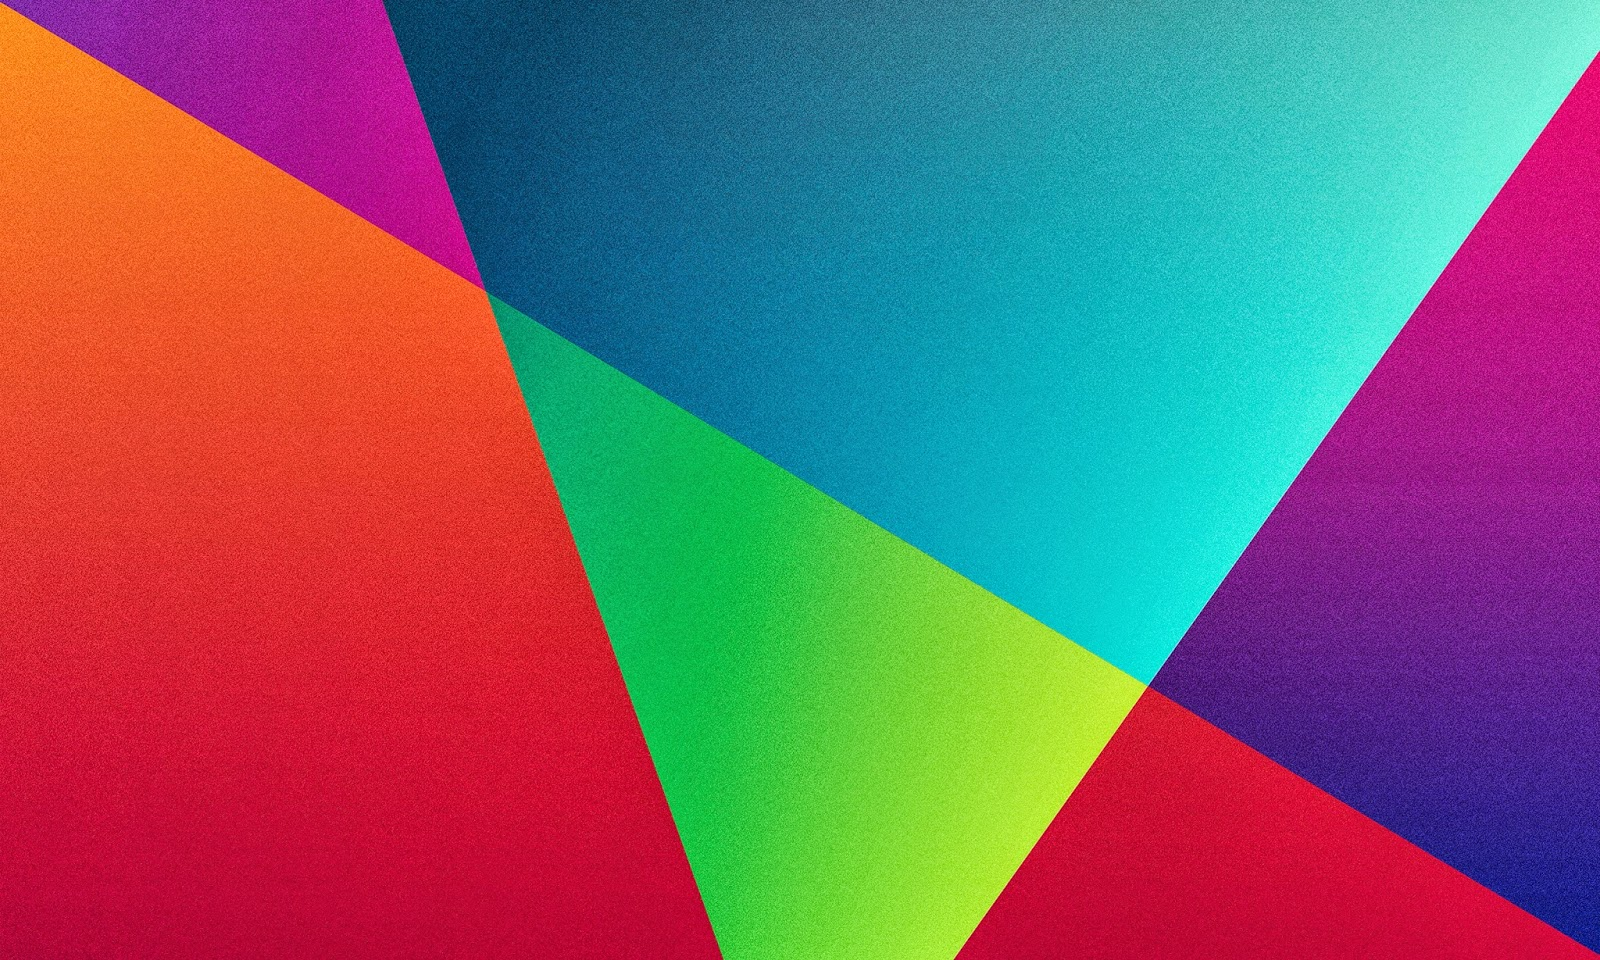 triangle abstract wallpapers - photo #11